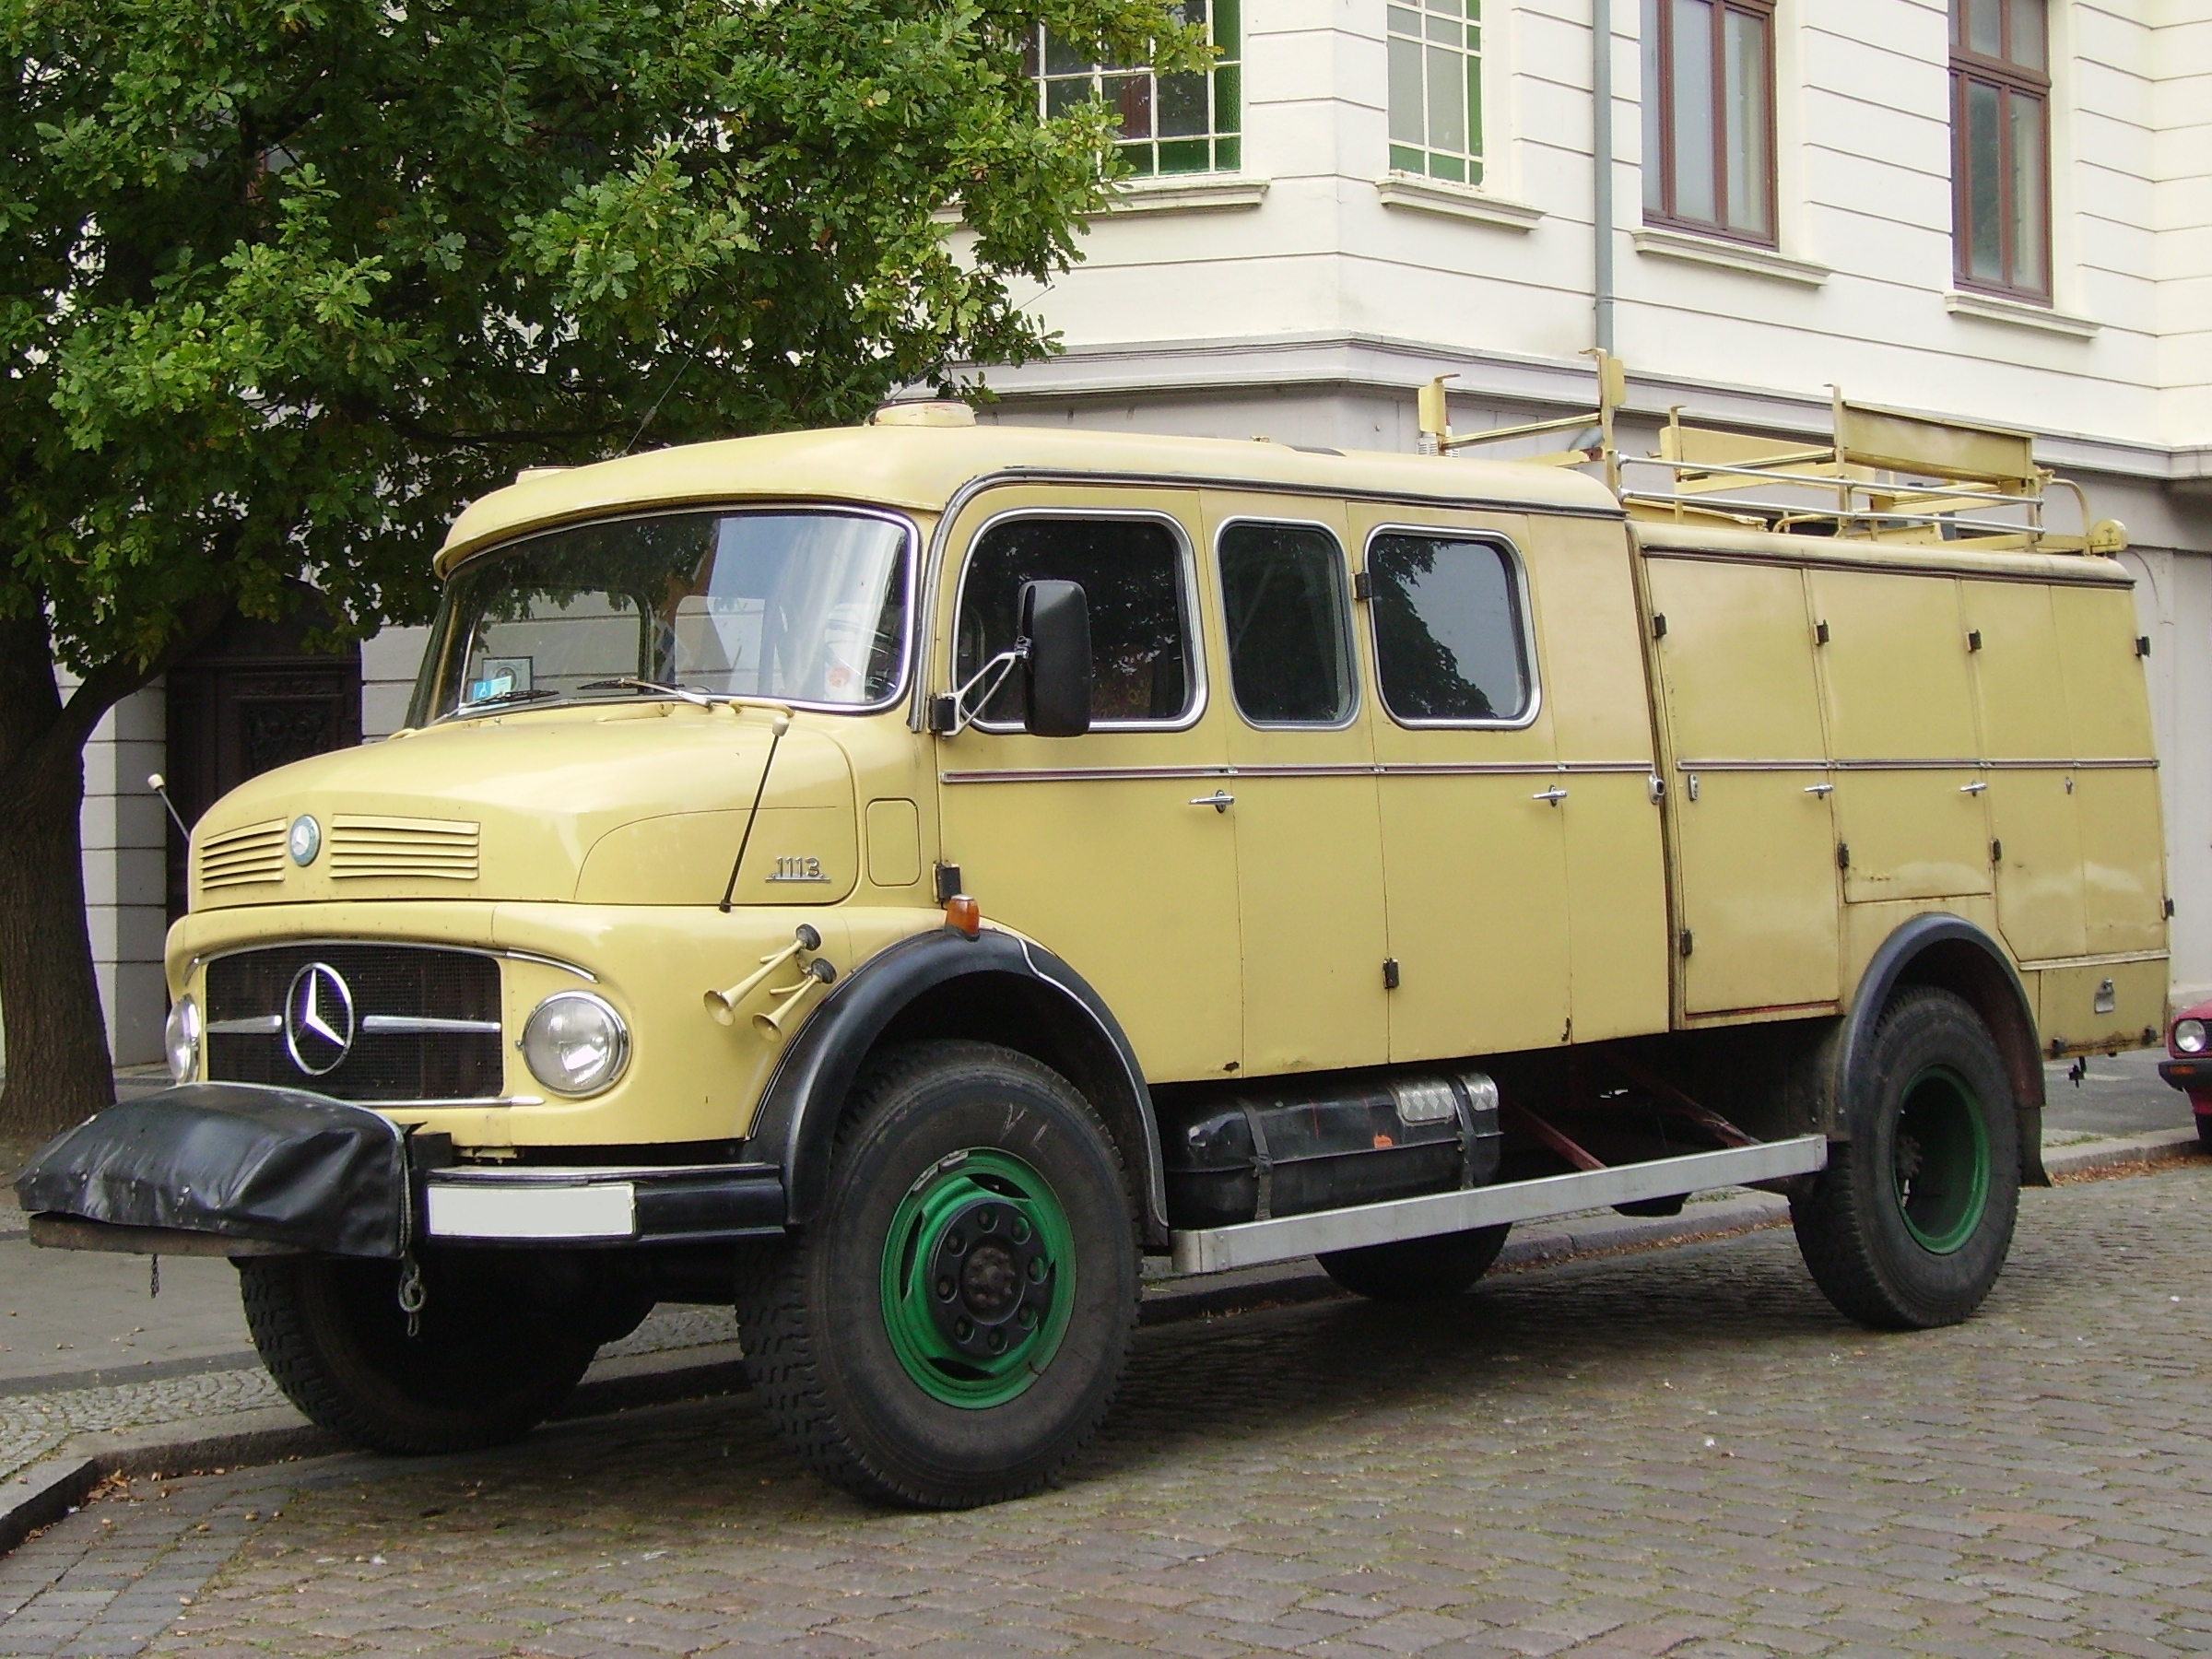 File:Mercedes-Benz 1113.jpg